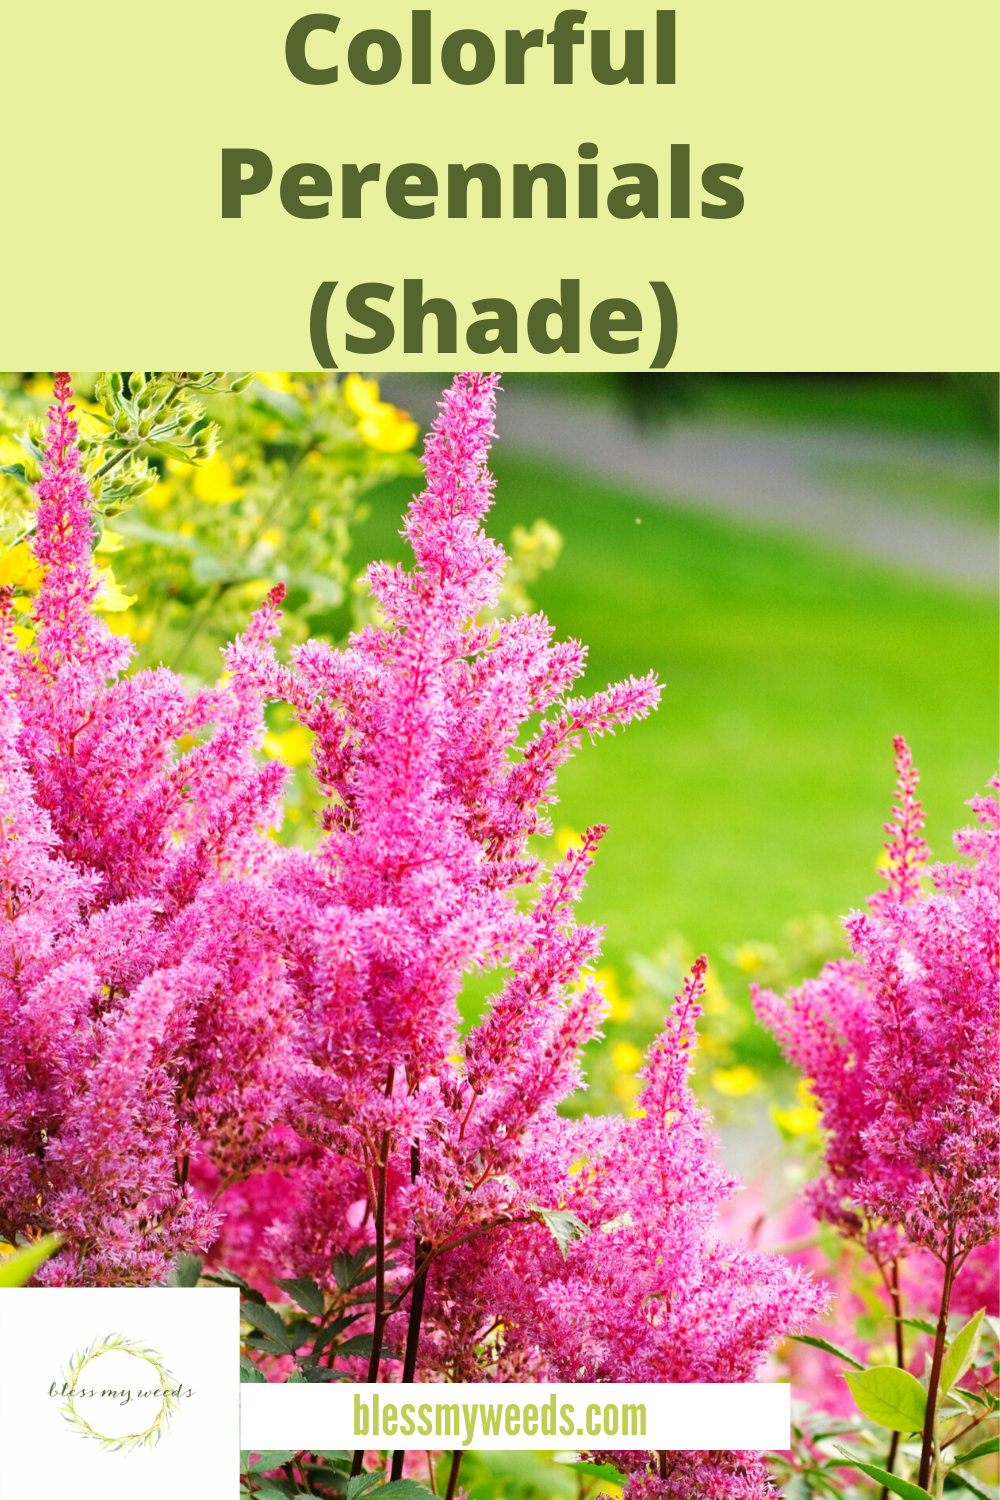 Want a yard that makes people stop the car just to drool? Well, these colorful perennials are exactly what you need. Pack with powerful color, they return every year bigger and better. Keep reading because you know that is exactly what you want. #perennials #flower #flowergardening #gardeningtips #blessmyweedsblog